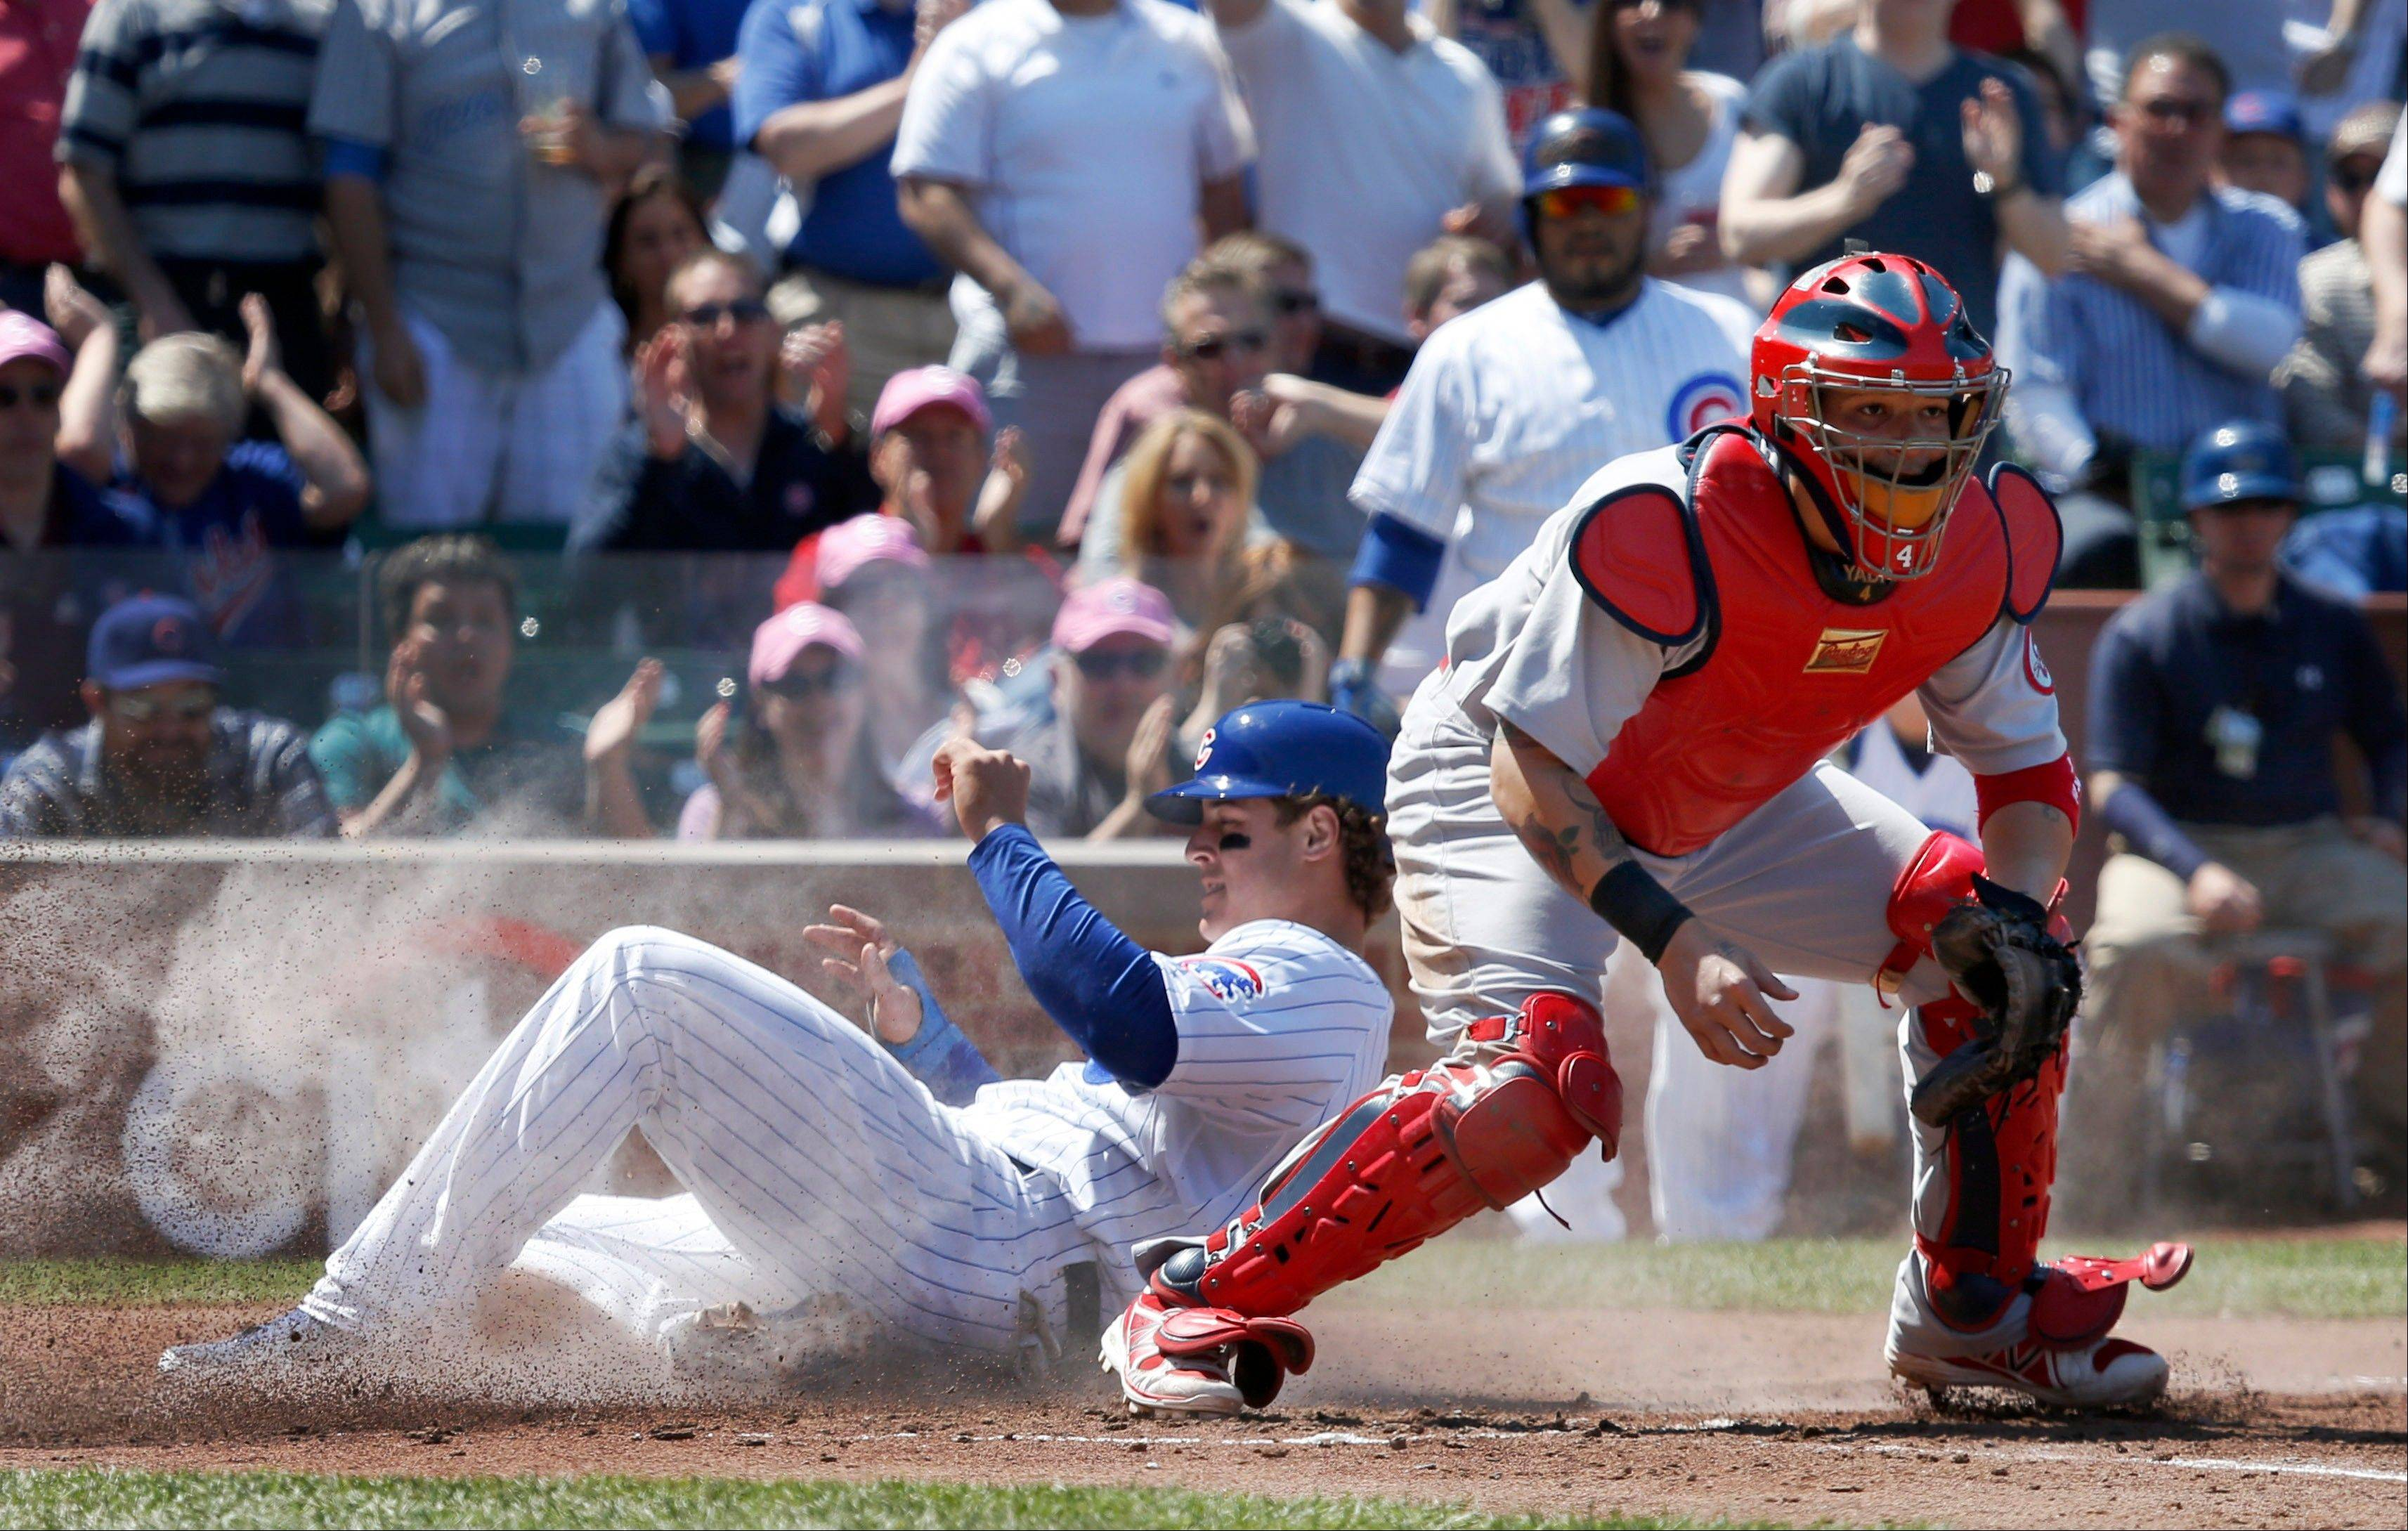 Anthony Rizzo, left, scores past St. Louis Cardinals catcher Yadier Molina on an RBI double by Nate Schierholtz in the fourth inning of a baseball game, Wednesday, May 8 2013, in Chicago.